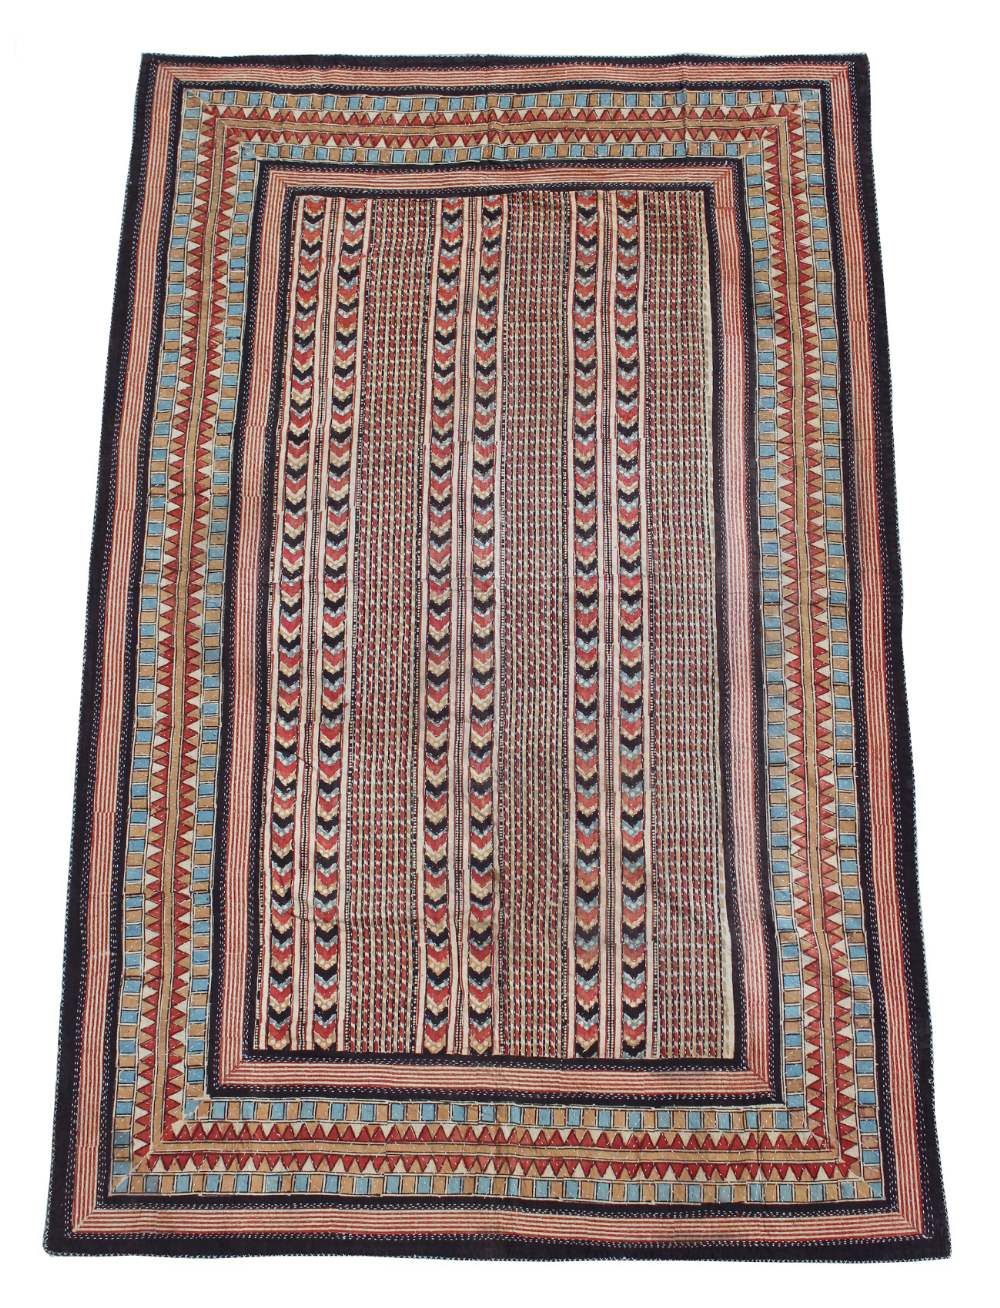 Property of a deceased estate - an Egyptian printed cotton throw, with decorative stitching, 85 by